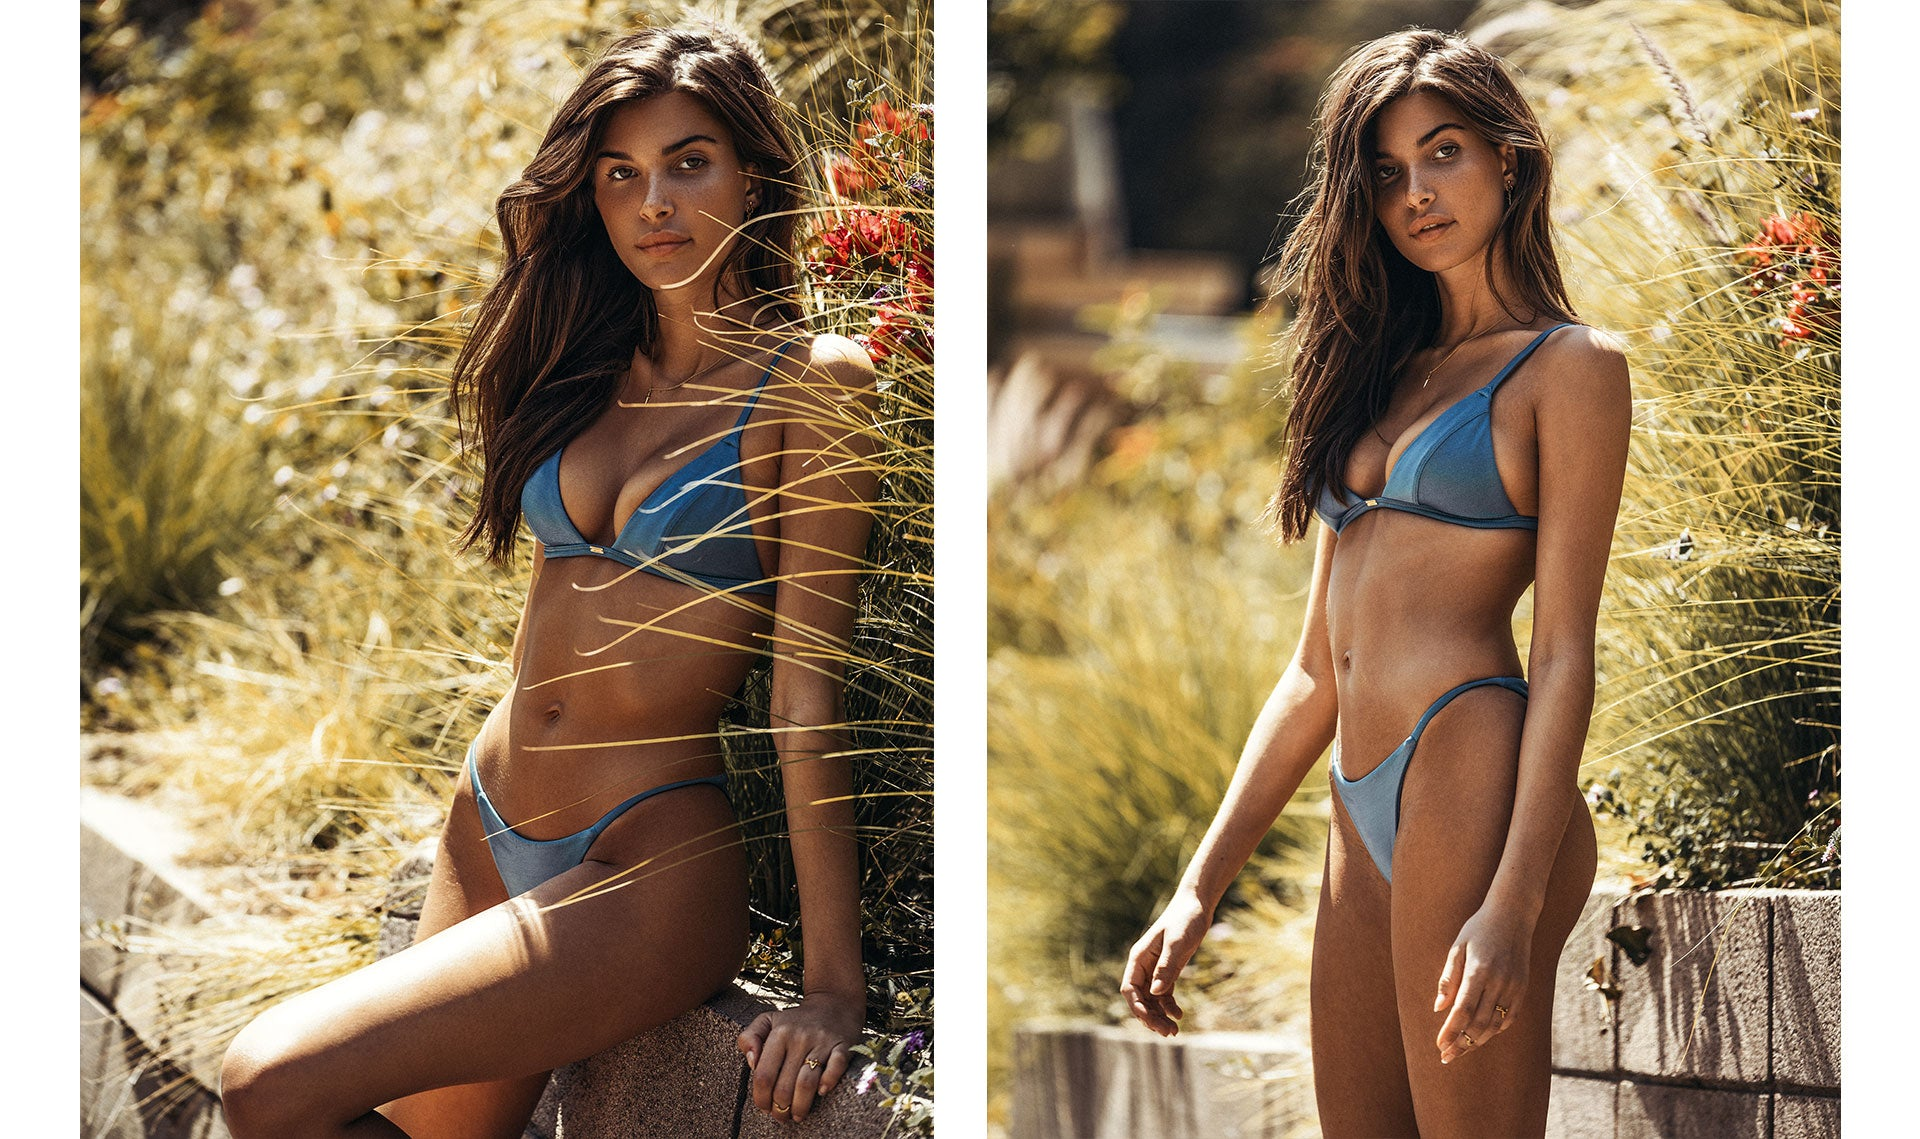 Charlotte D'Alessio wearing the So Chic Blue Lagoon Bikini Set